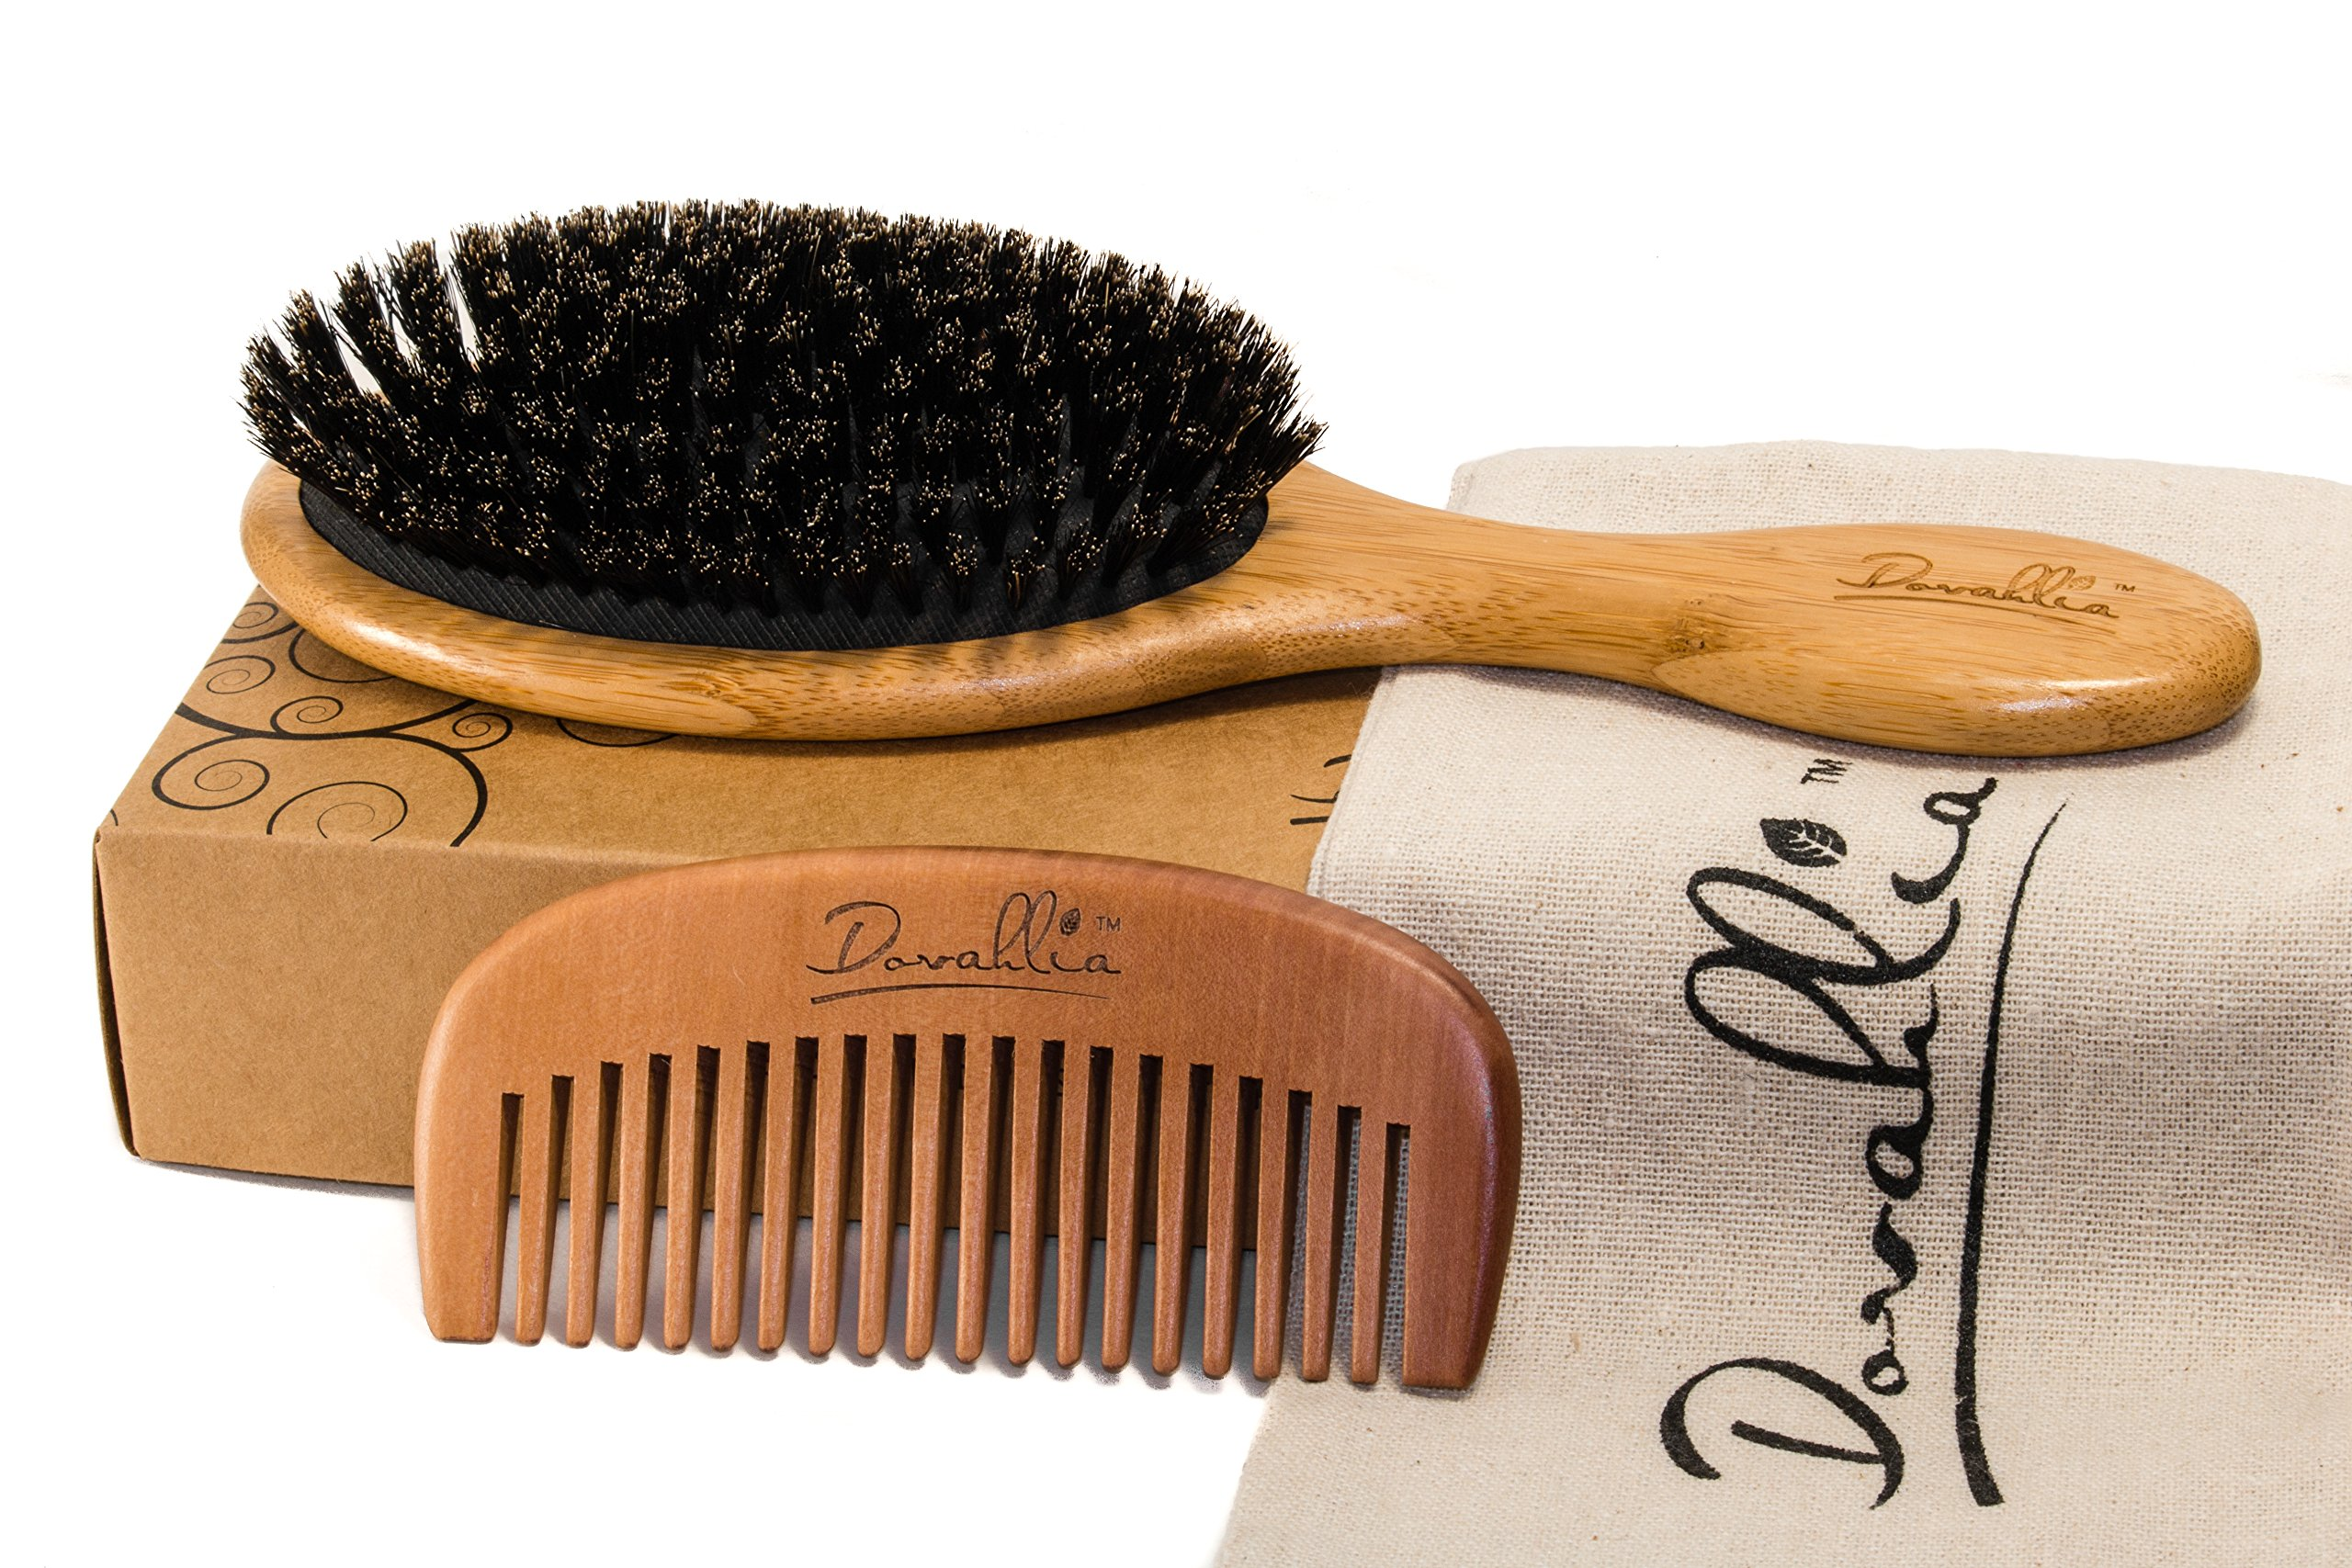 Boar Bristle Hair Brush Set for Women and Men - Designed for Thin and Normal Hair - Adds Shine and Improves Hair Texture - Wood Comb and Gift Bag Included (black) by Dovahlia